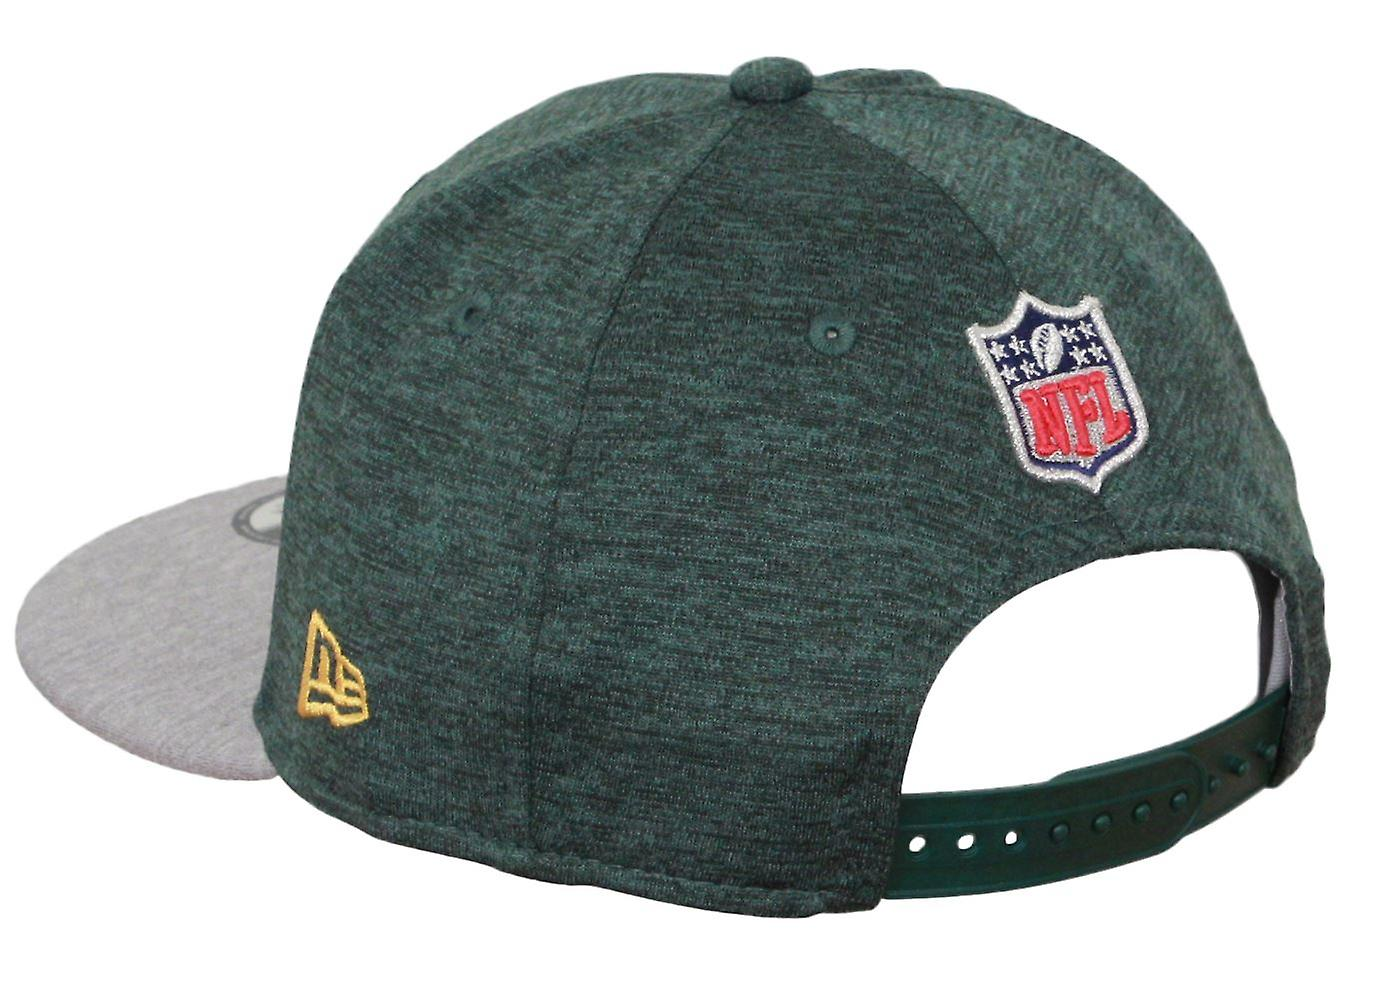 New Era Onfield 9Fifty Cap ~ Green Bay Packers